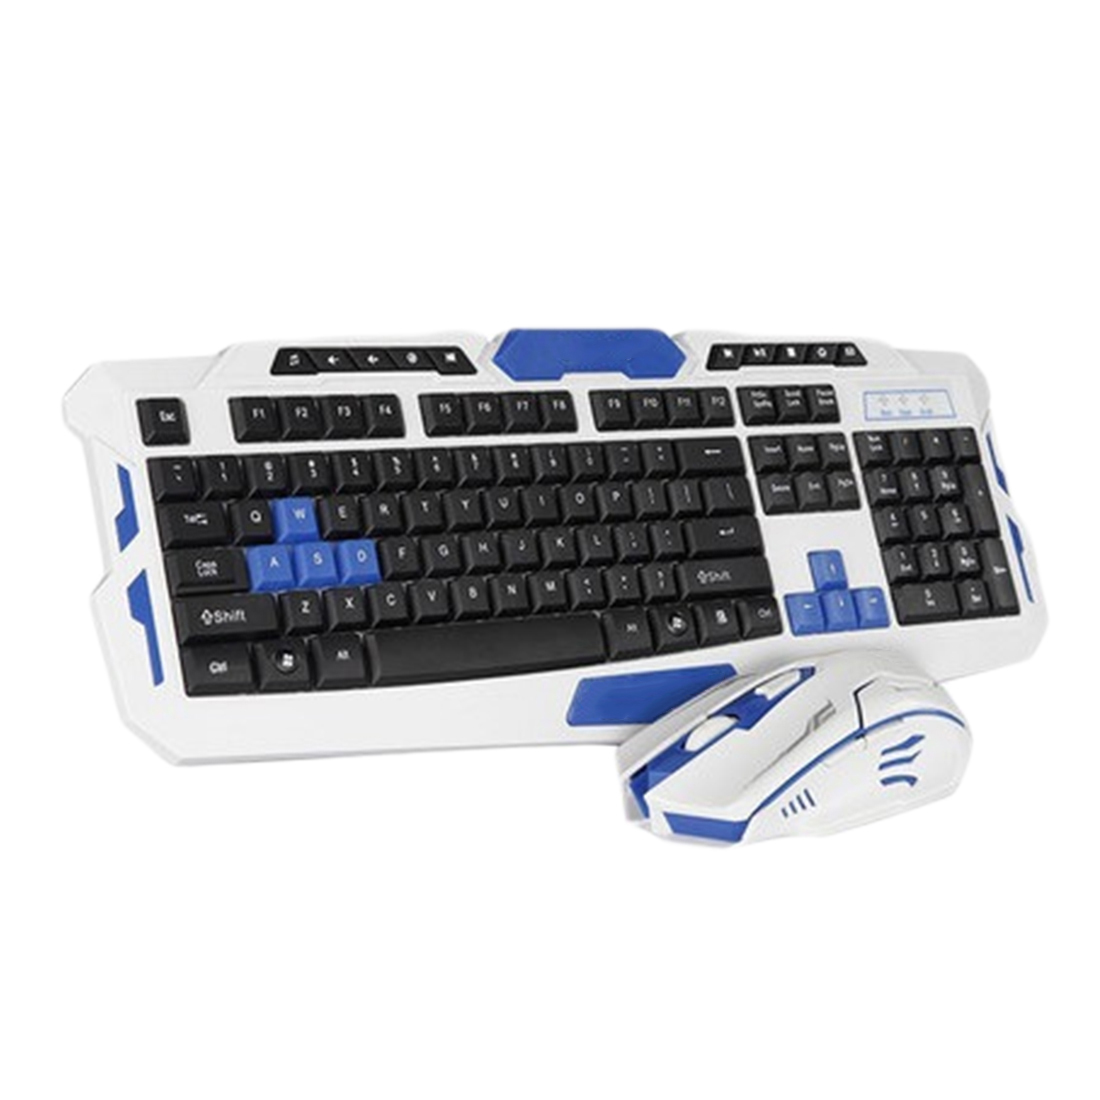 Etmakit New Wireless Keyboard Mouse Set Etmakit New Wireless Keyboard Mouse Set HTB18gmNSVXXXXbkXpXXq6xXFXXX3